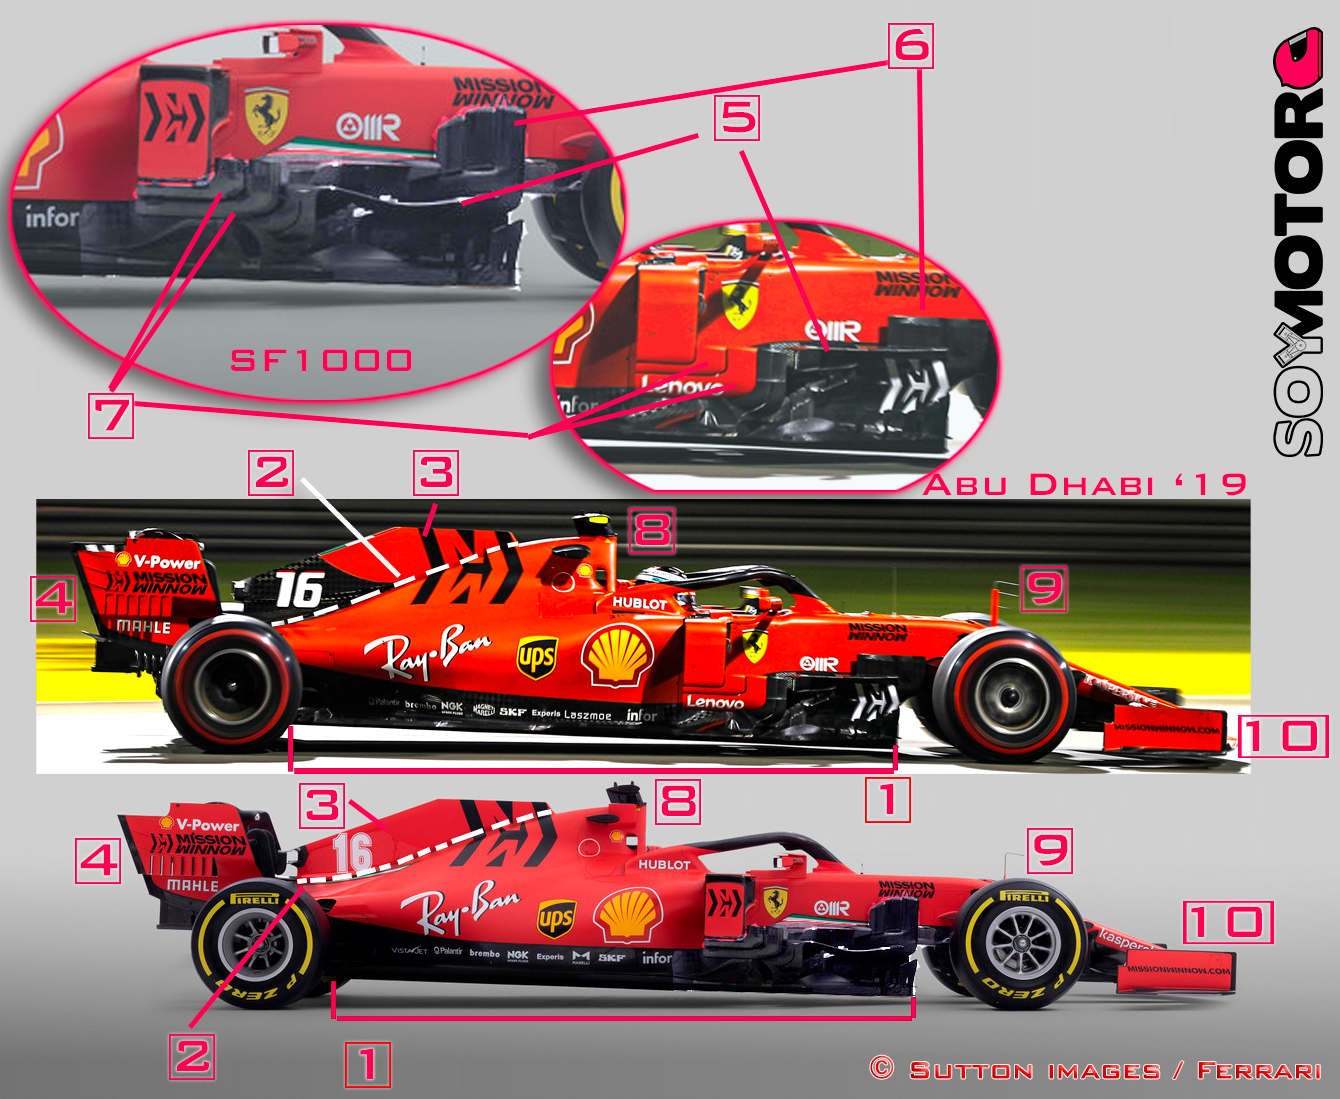 ferrari-sf1000-lateral.jpg